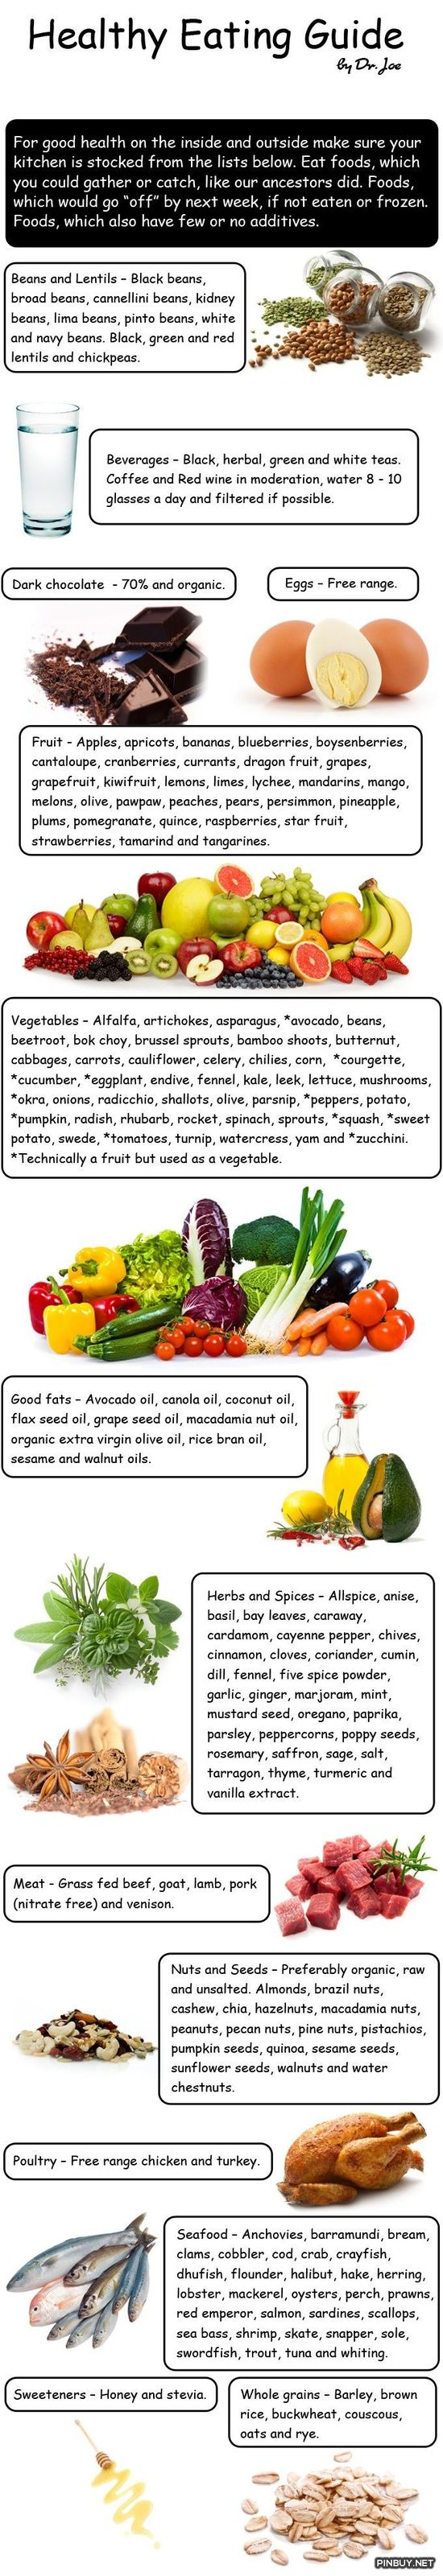 Healthy Eating Guide - Healthy Food for Fitness